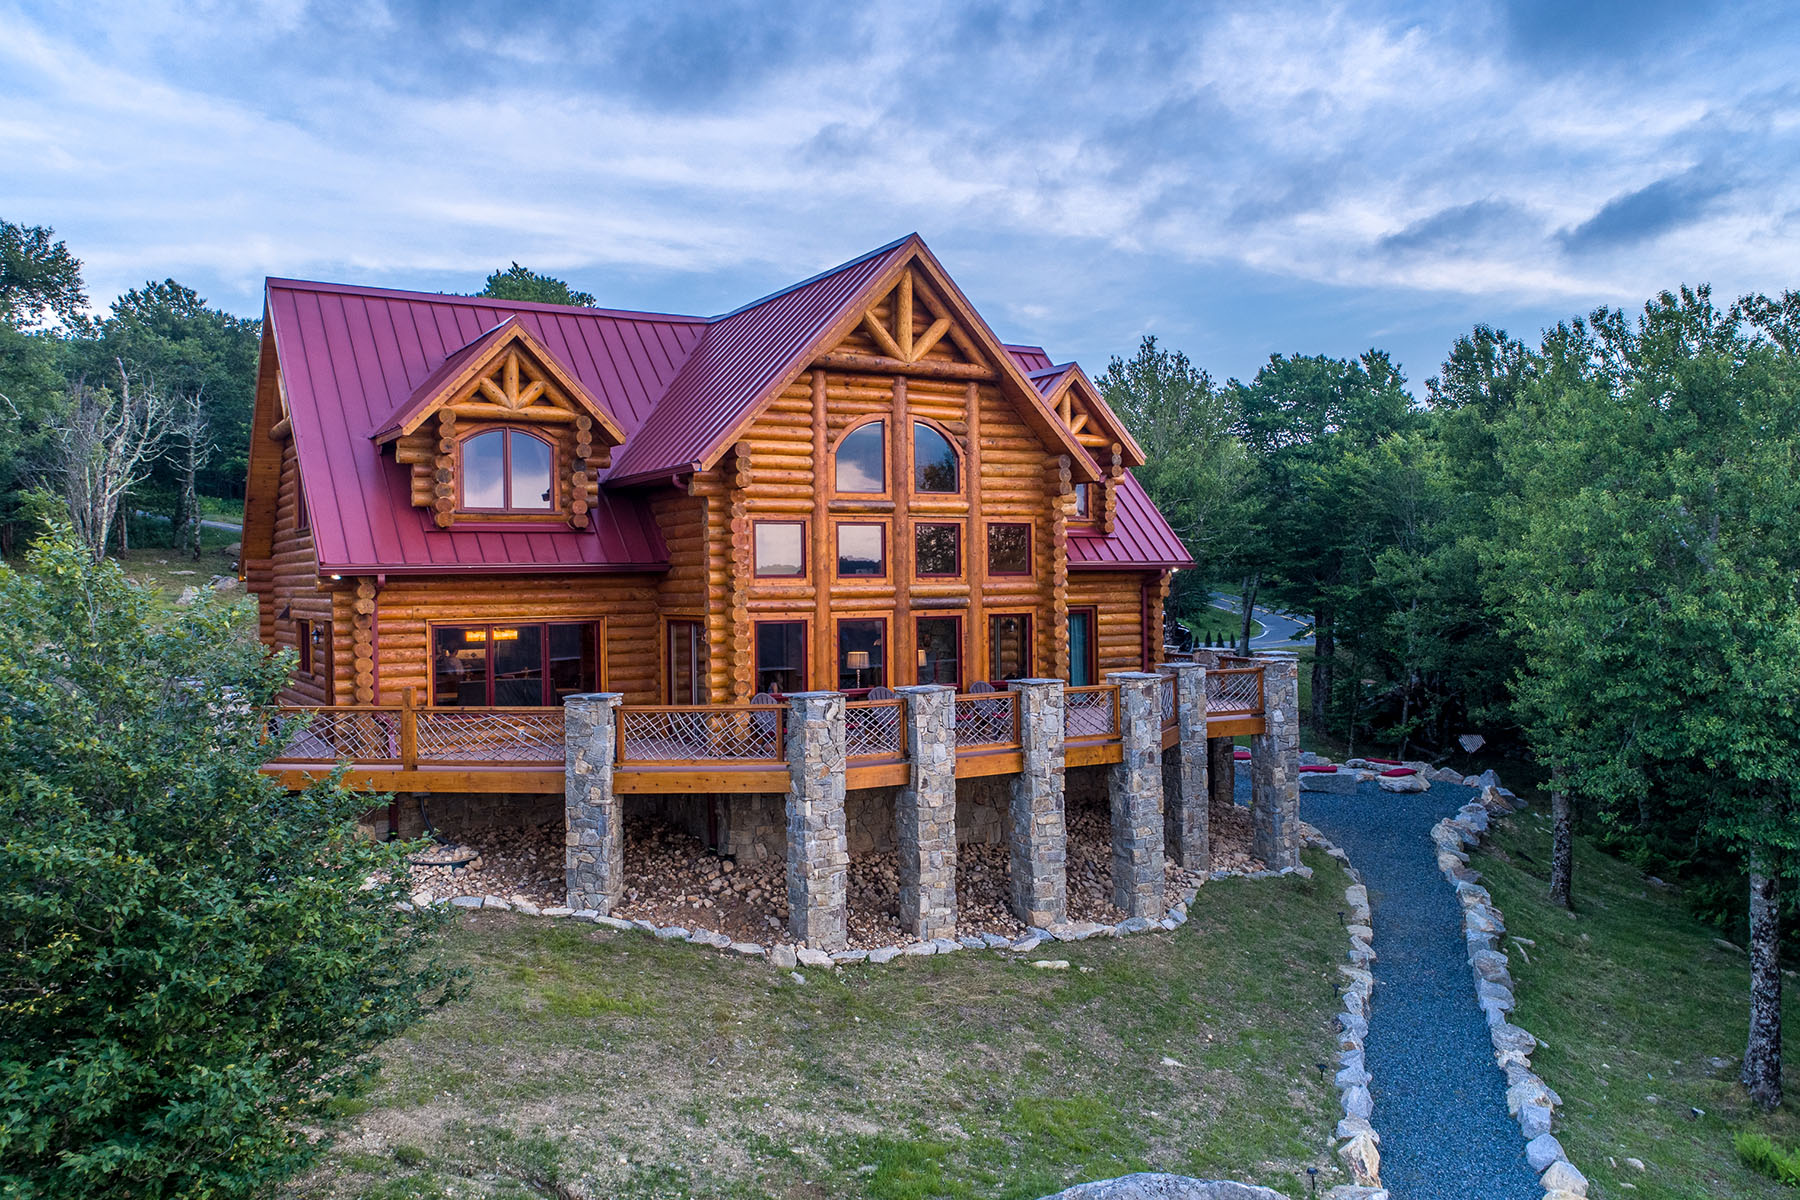 Single Family Homes for Sale at BEECH MOUNTAIN - EMERALD MOUNTAIN 112 Oz Cir Beech Mountain, North Carolina 28604 United States